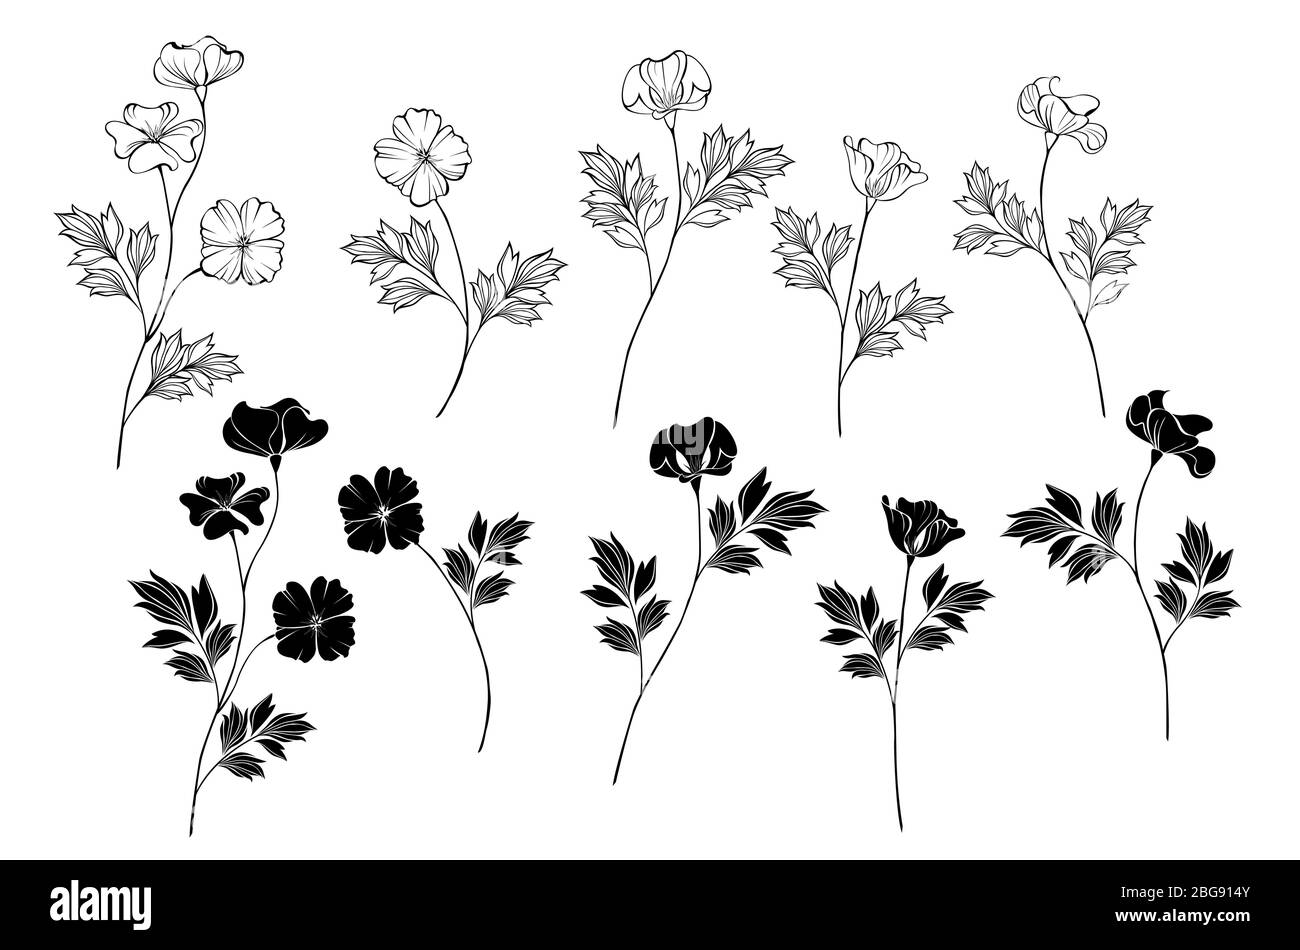 Set of Monochome (black and white) flowers California Poppy on isolated background. Stock Vector